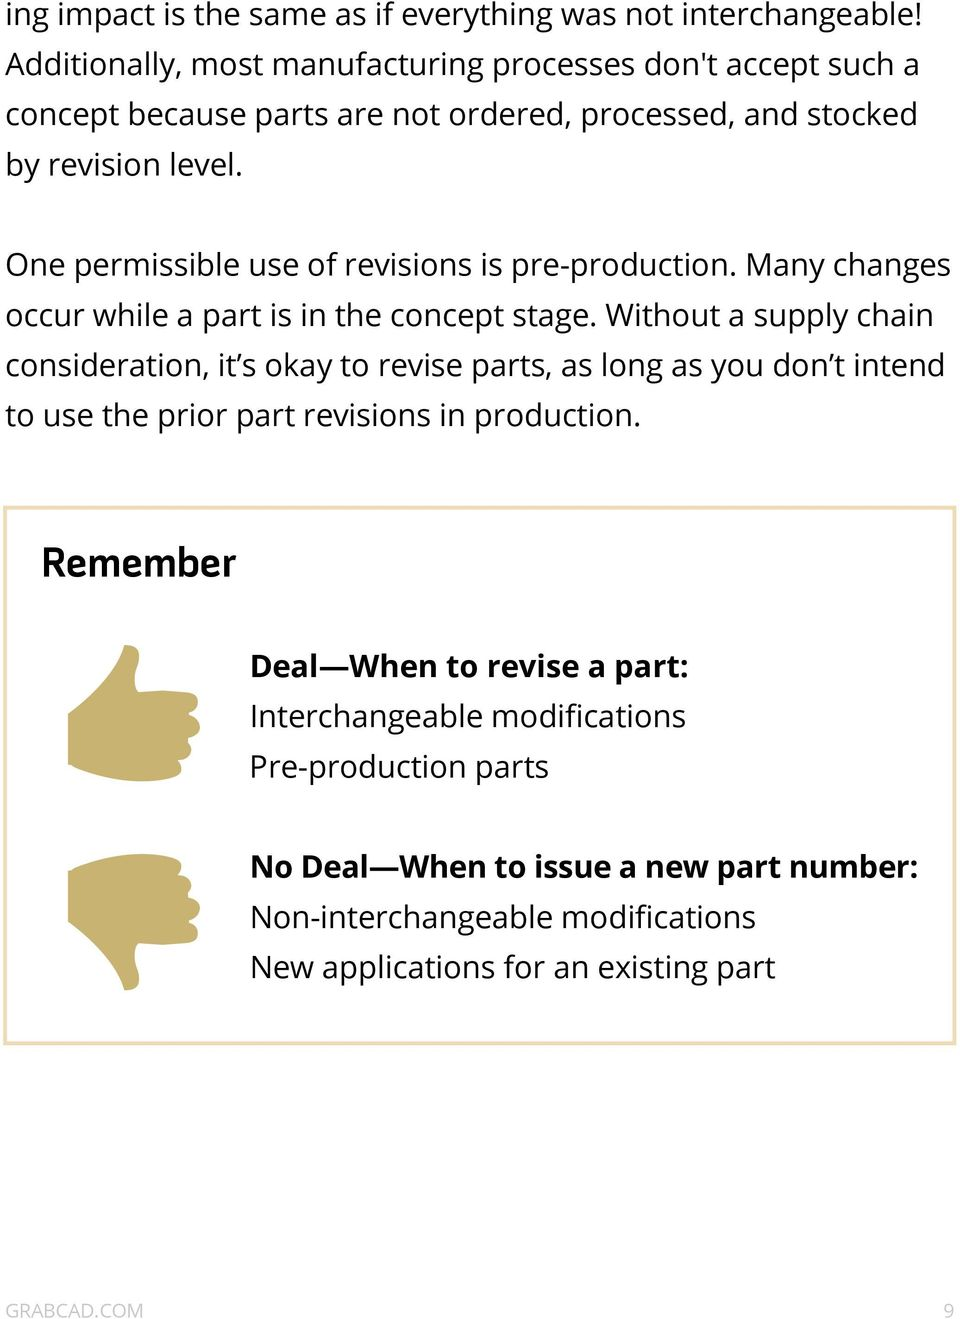 One permissible use of revisions is pre-production. Many changes occur while a part is in the concept stage.